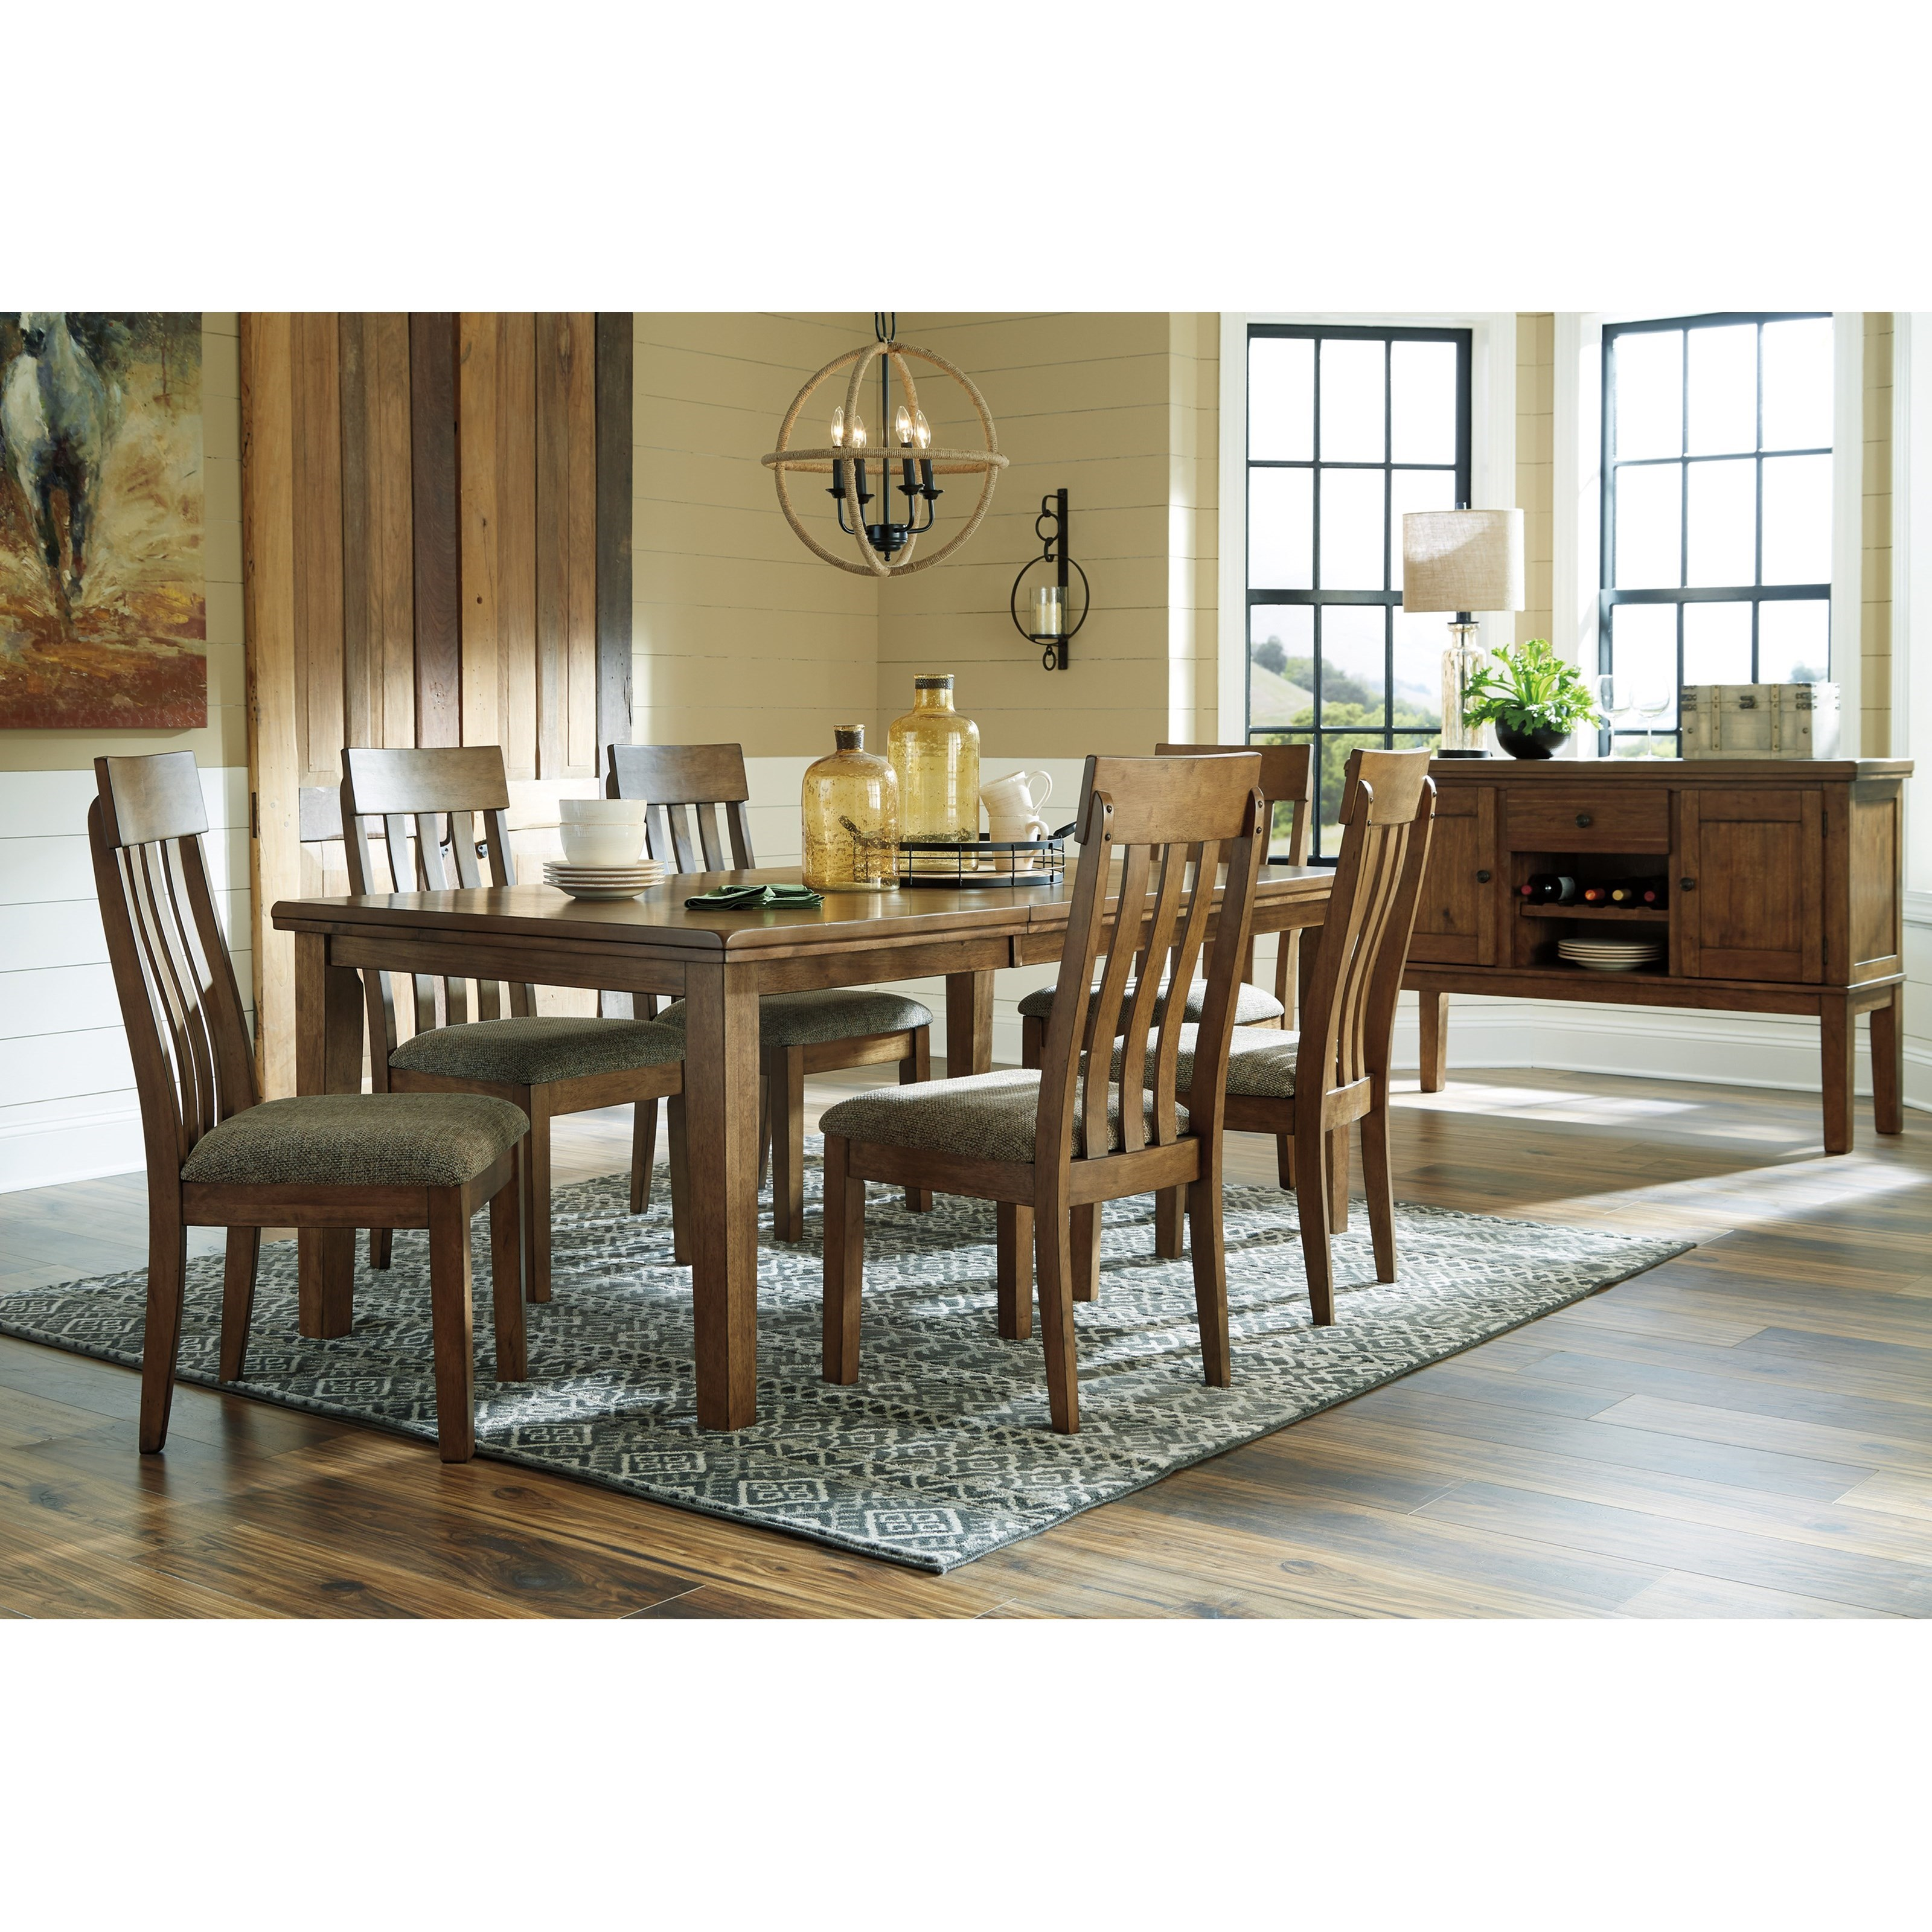 Informal Dining Room: Benchcraft Flaybern Casual Dining Room Group